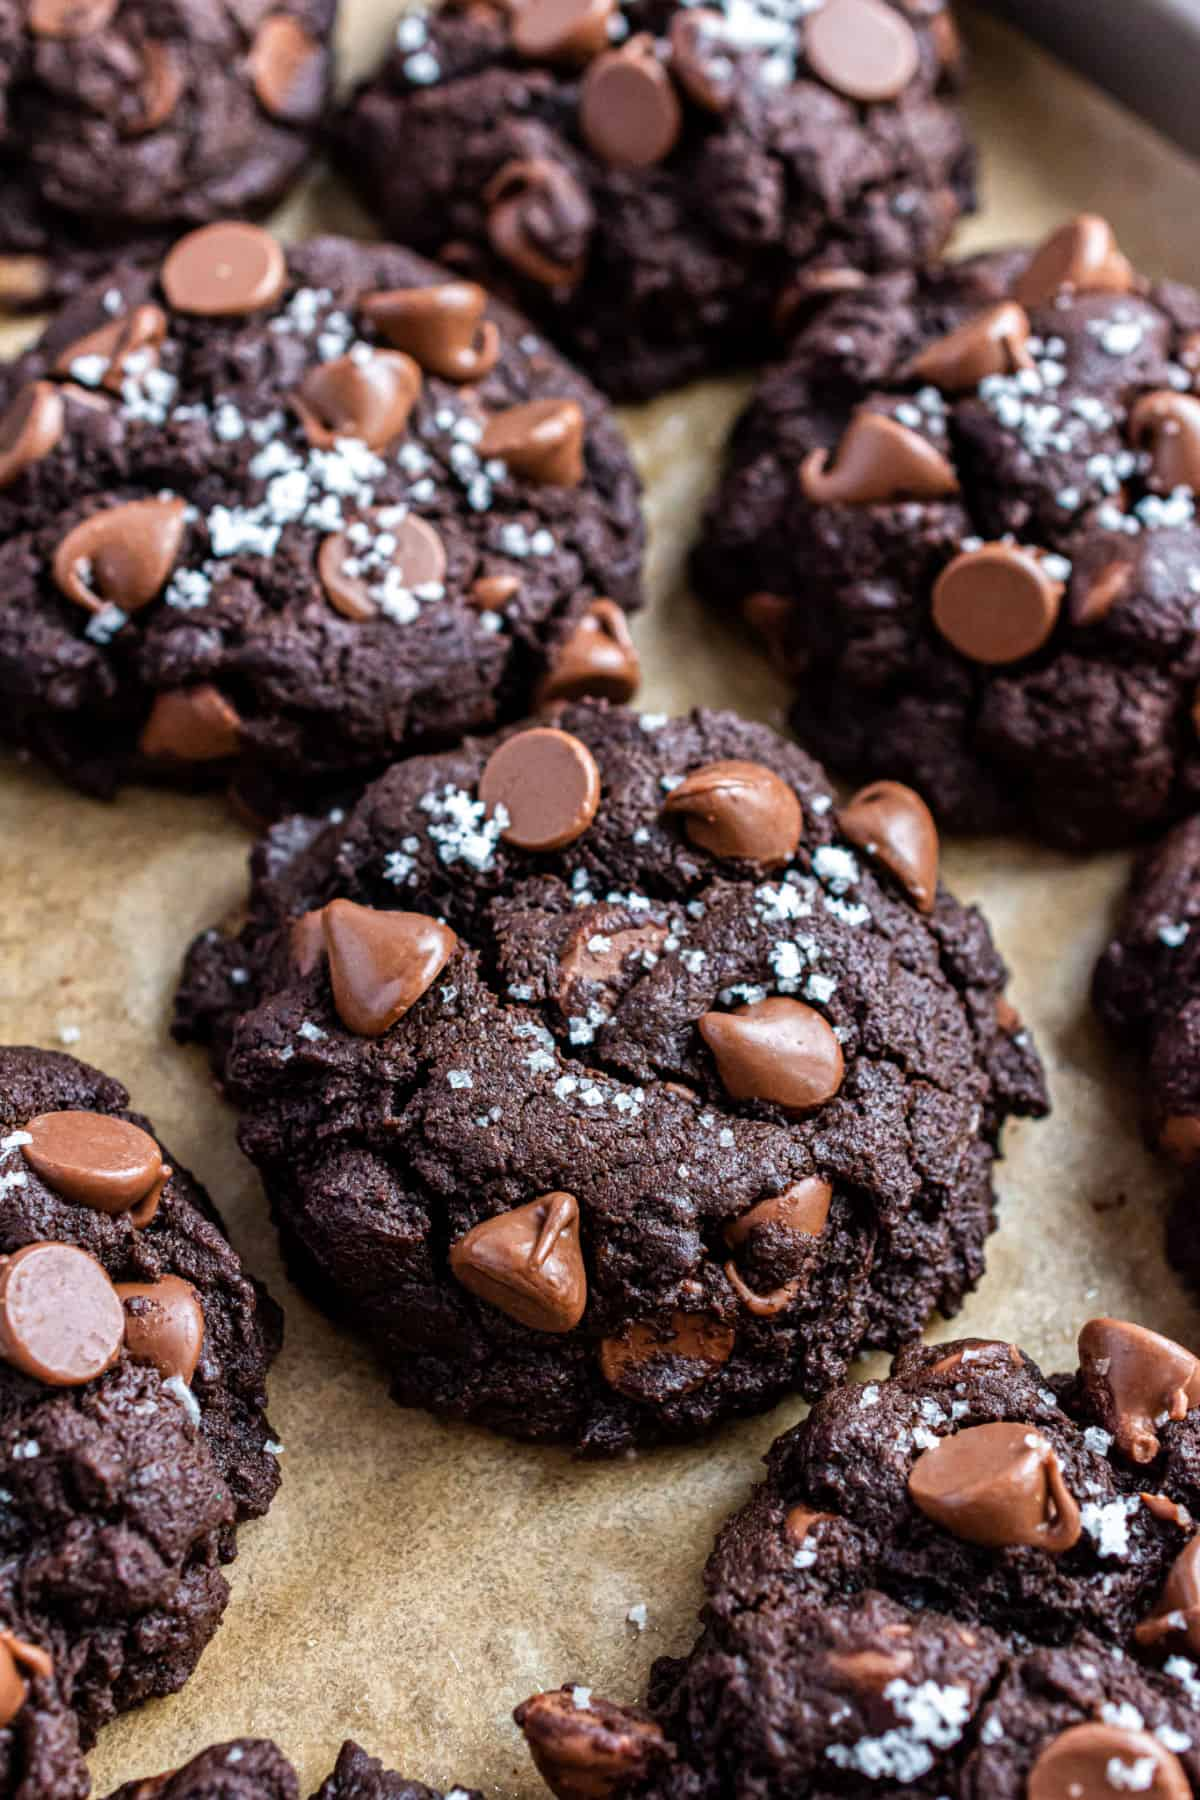 Chocolate cookies with chocolate chips and sea salt on parchment paper.